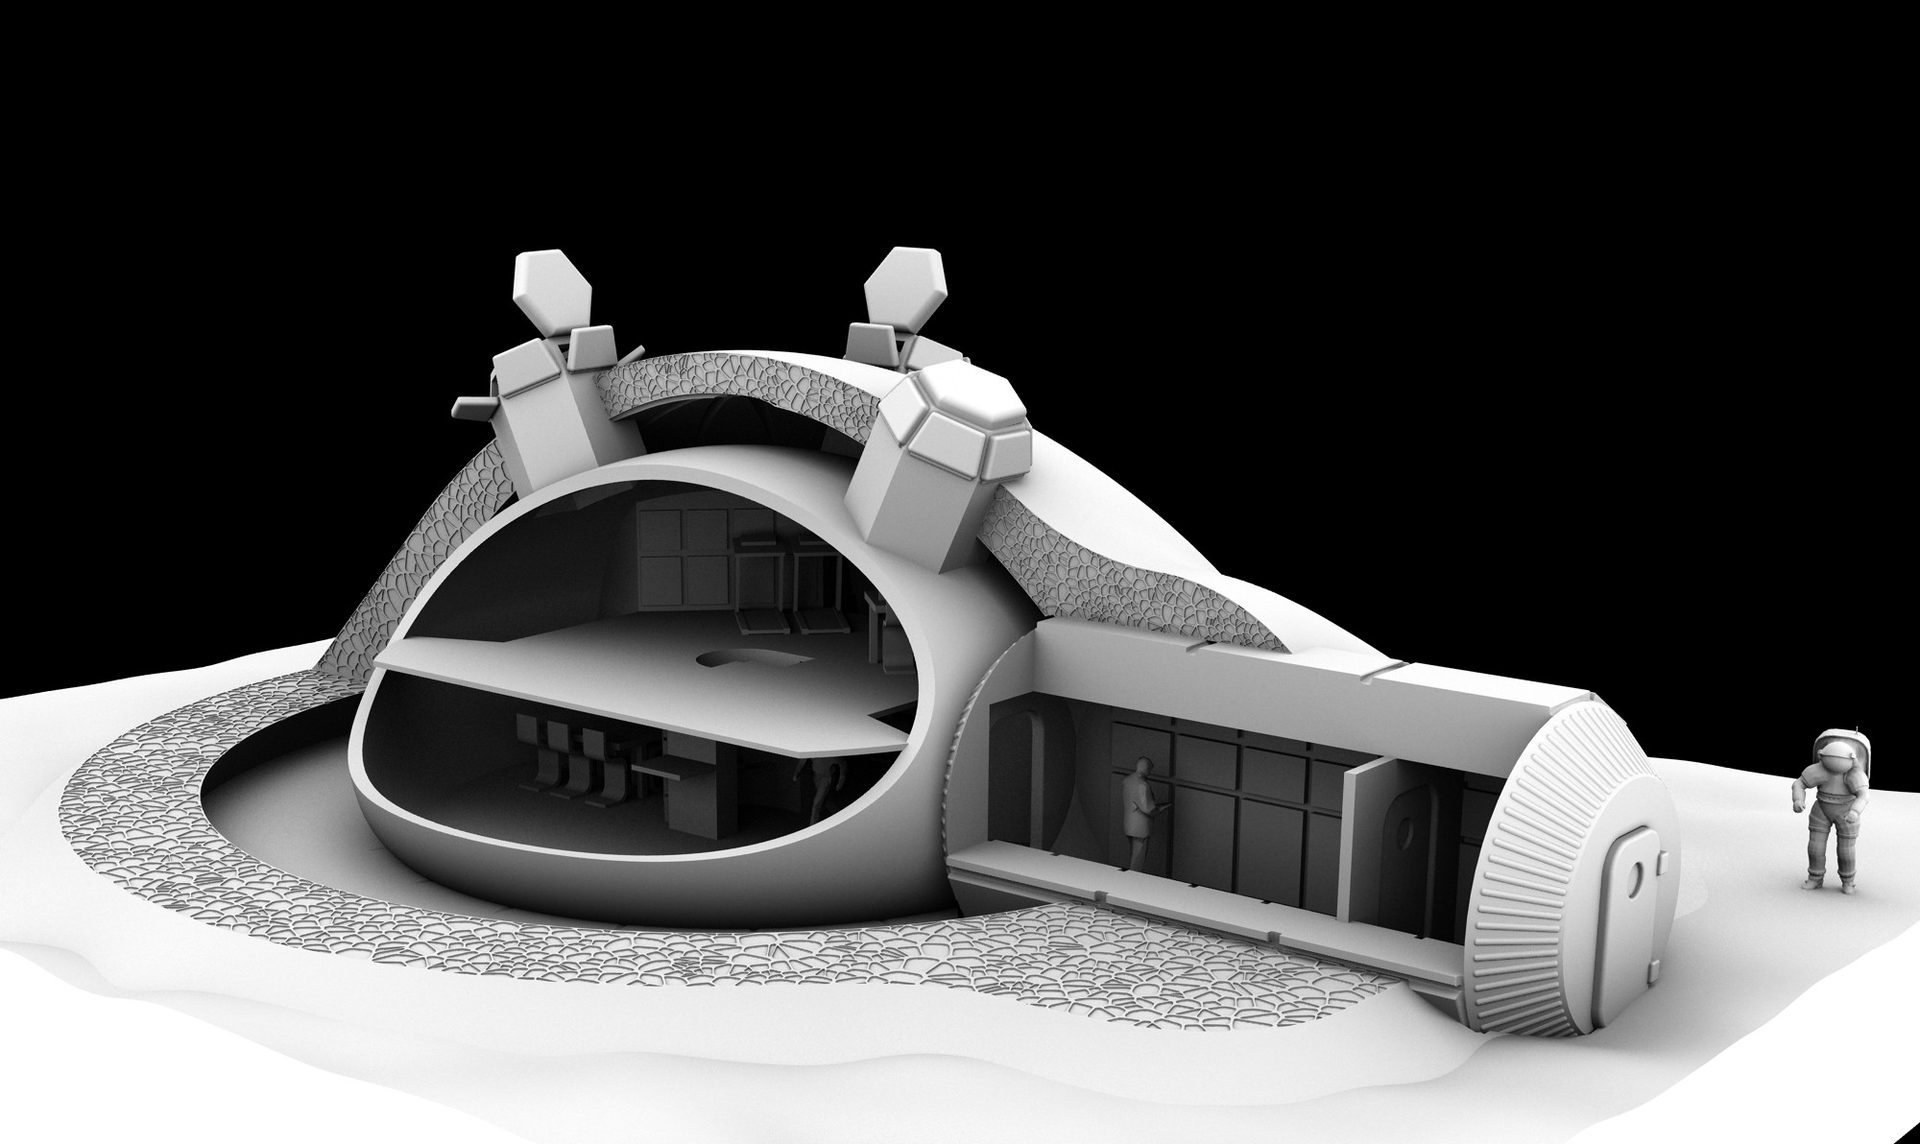 3D-printed lunar base design